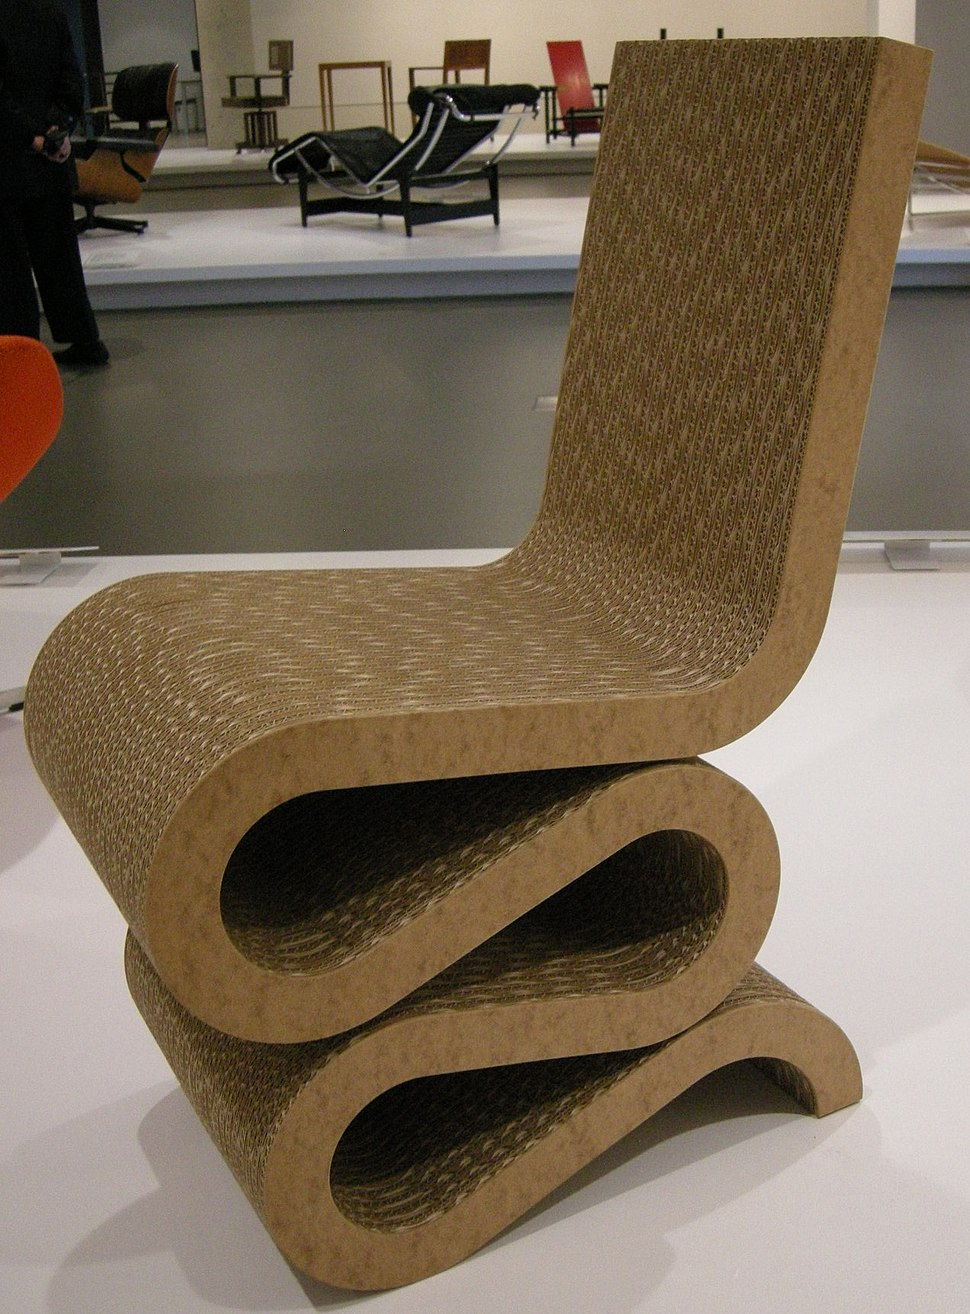 Ngv design, frank o. gehry, wiggle side chair, 1972